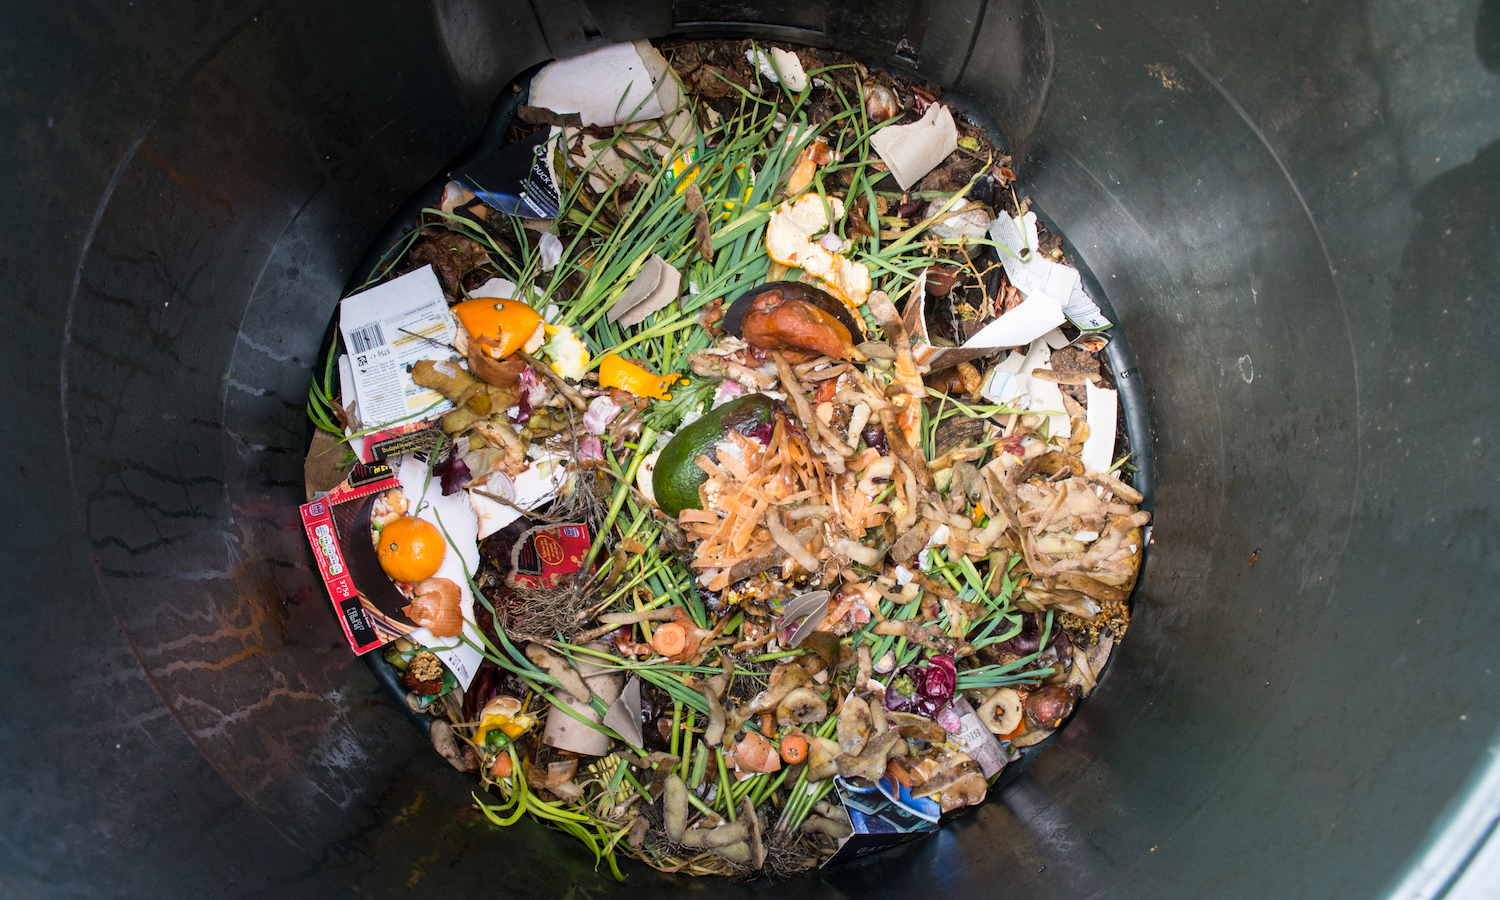 Food Waste is a Solvable Issue